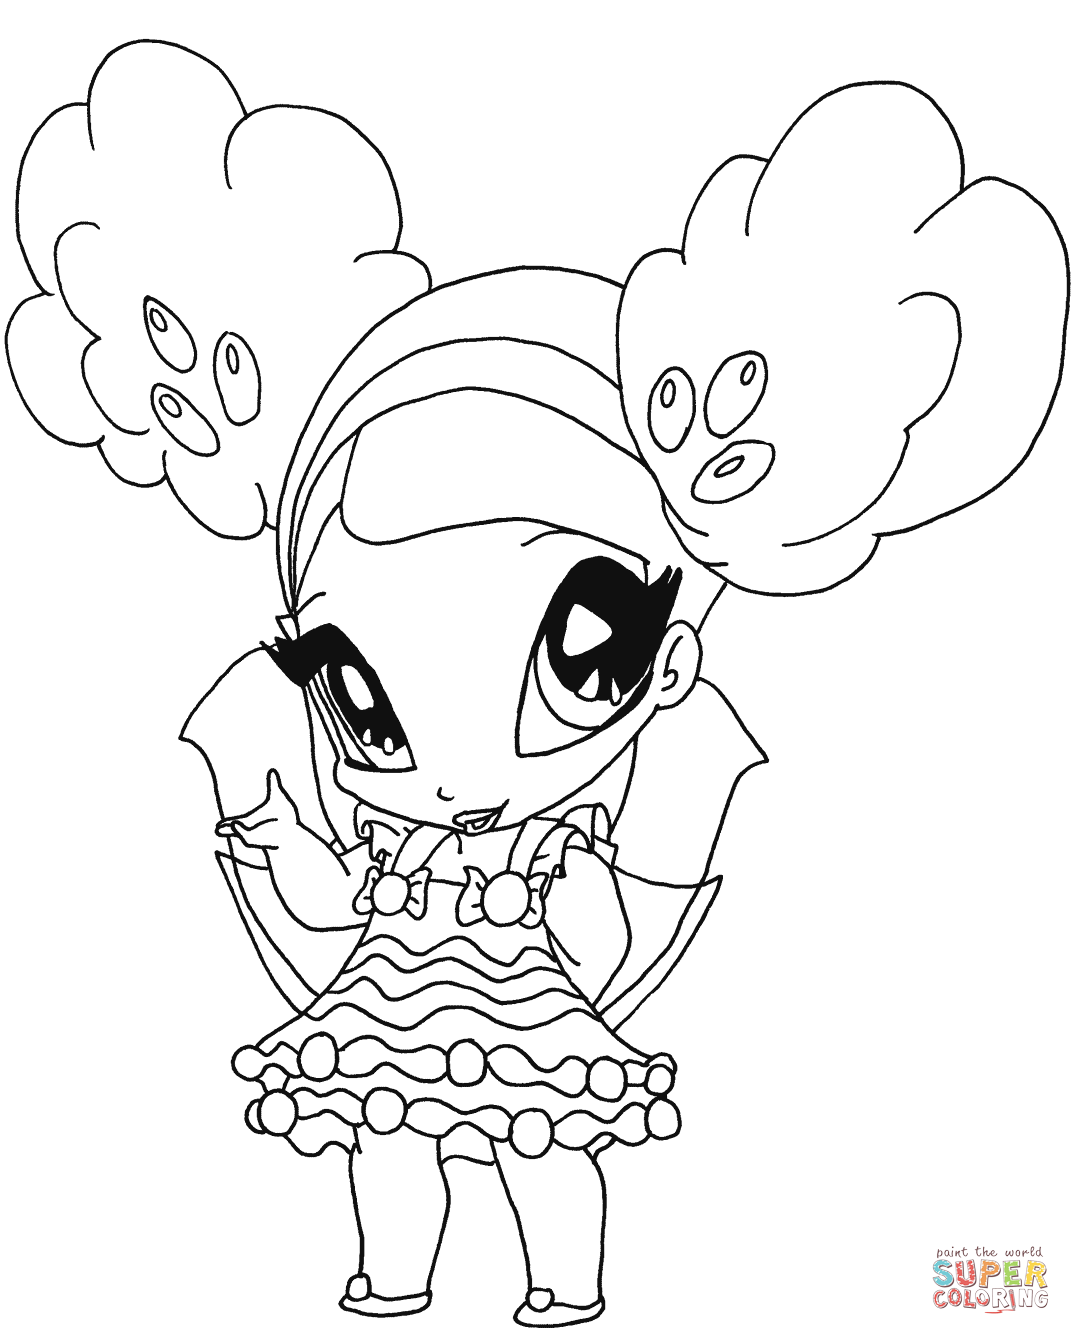 Free printable winx club coloring pages - Winx Club Caramel Pixie Coloring Page Free Printable Coloring Pages